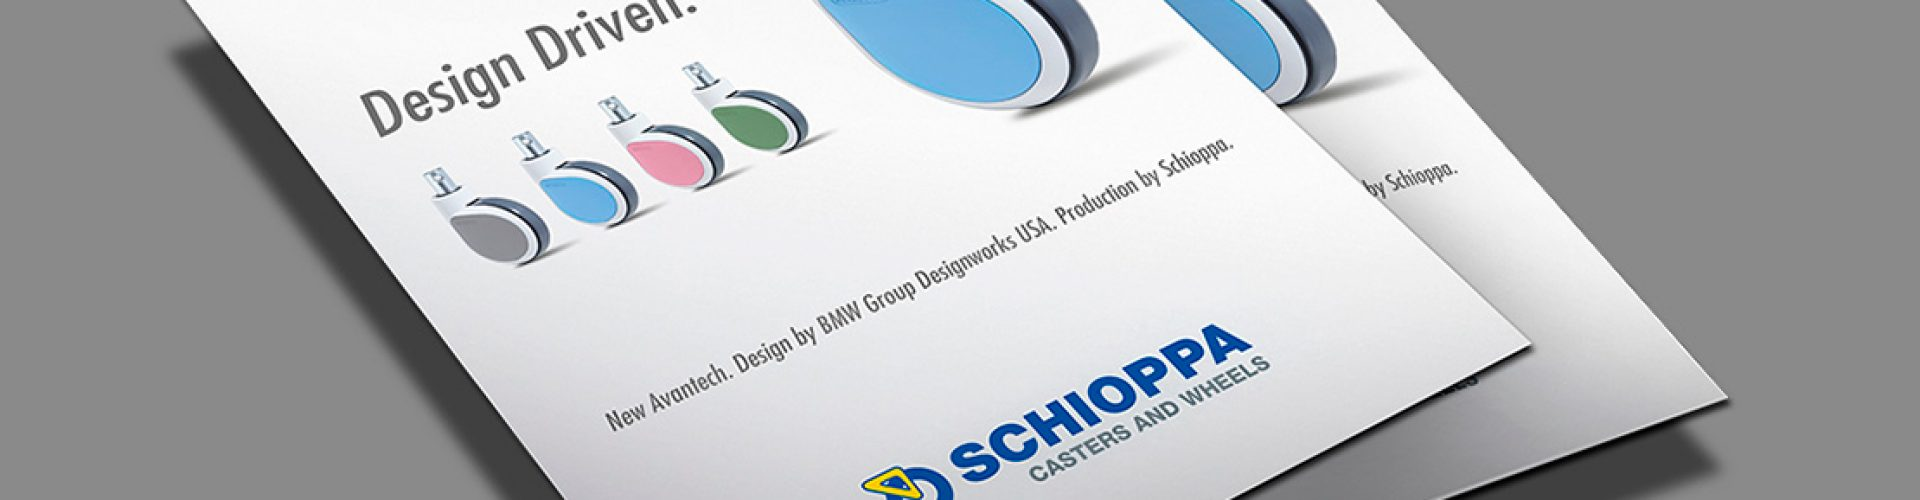 Schioppa Institutional